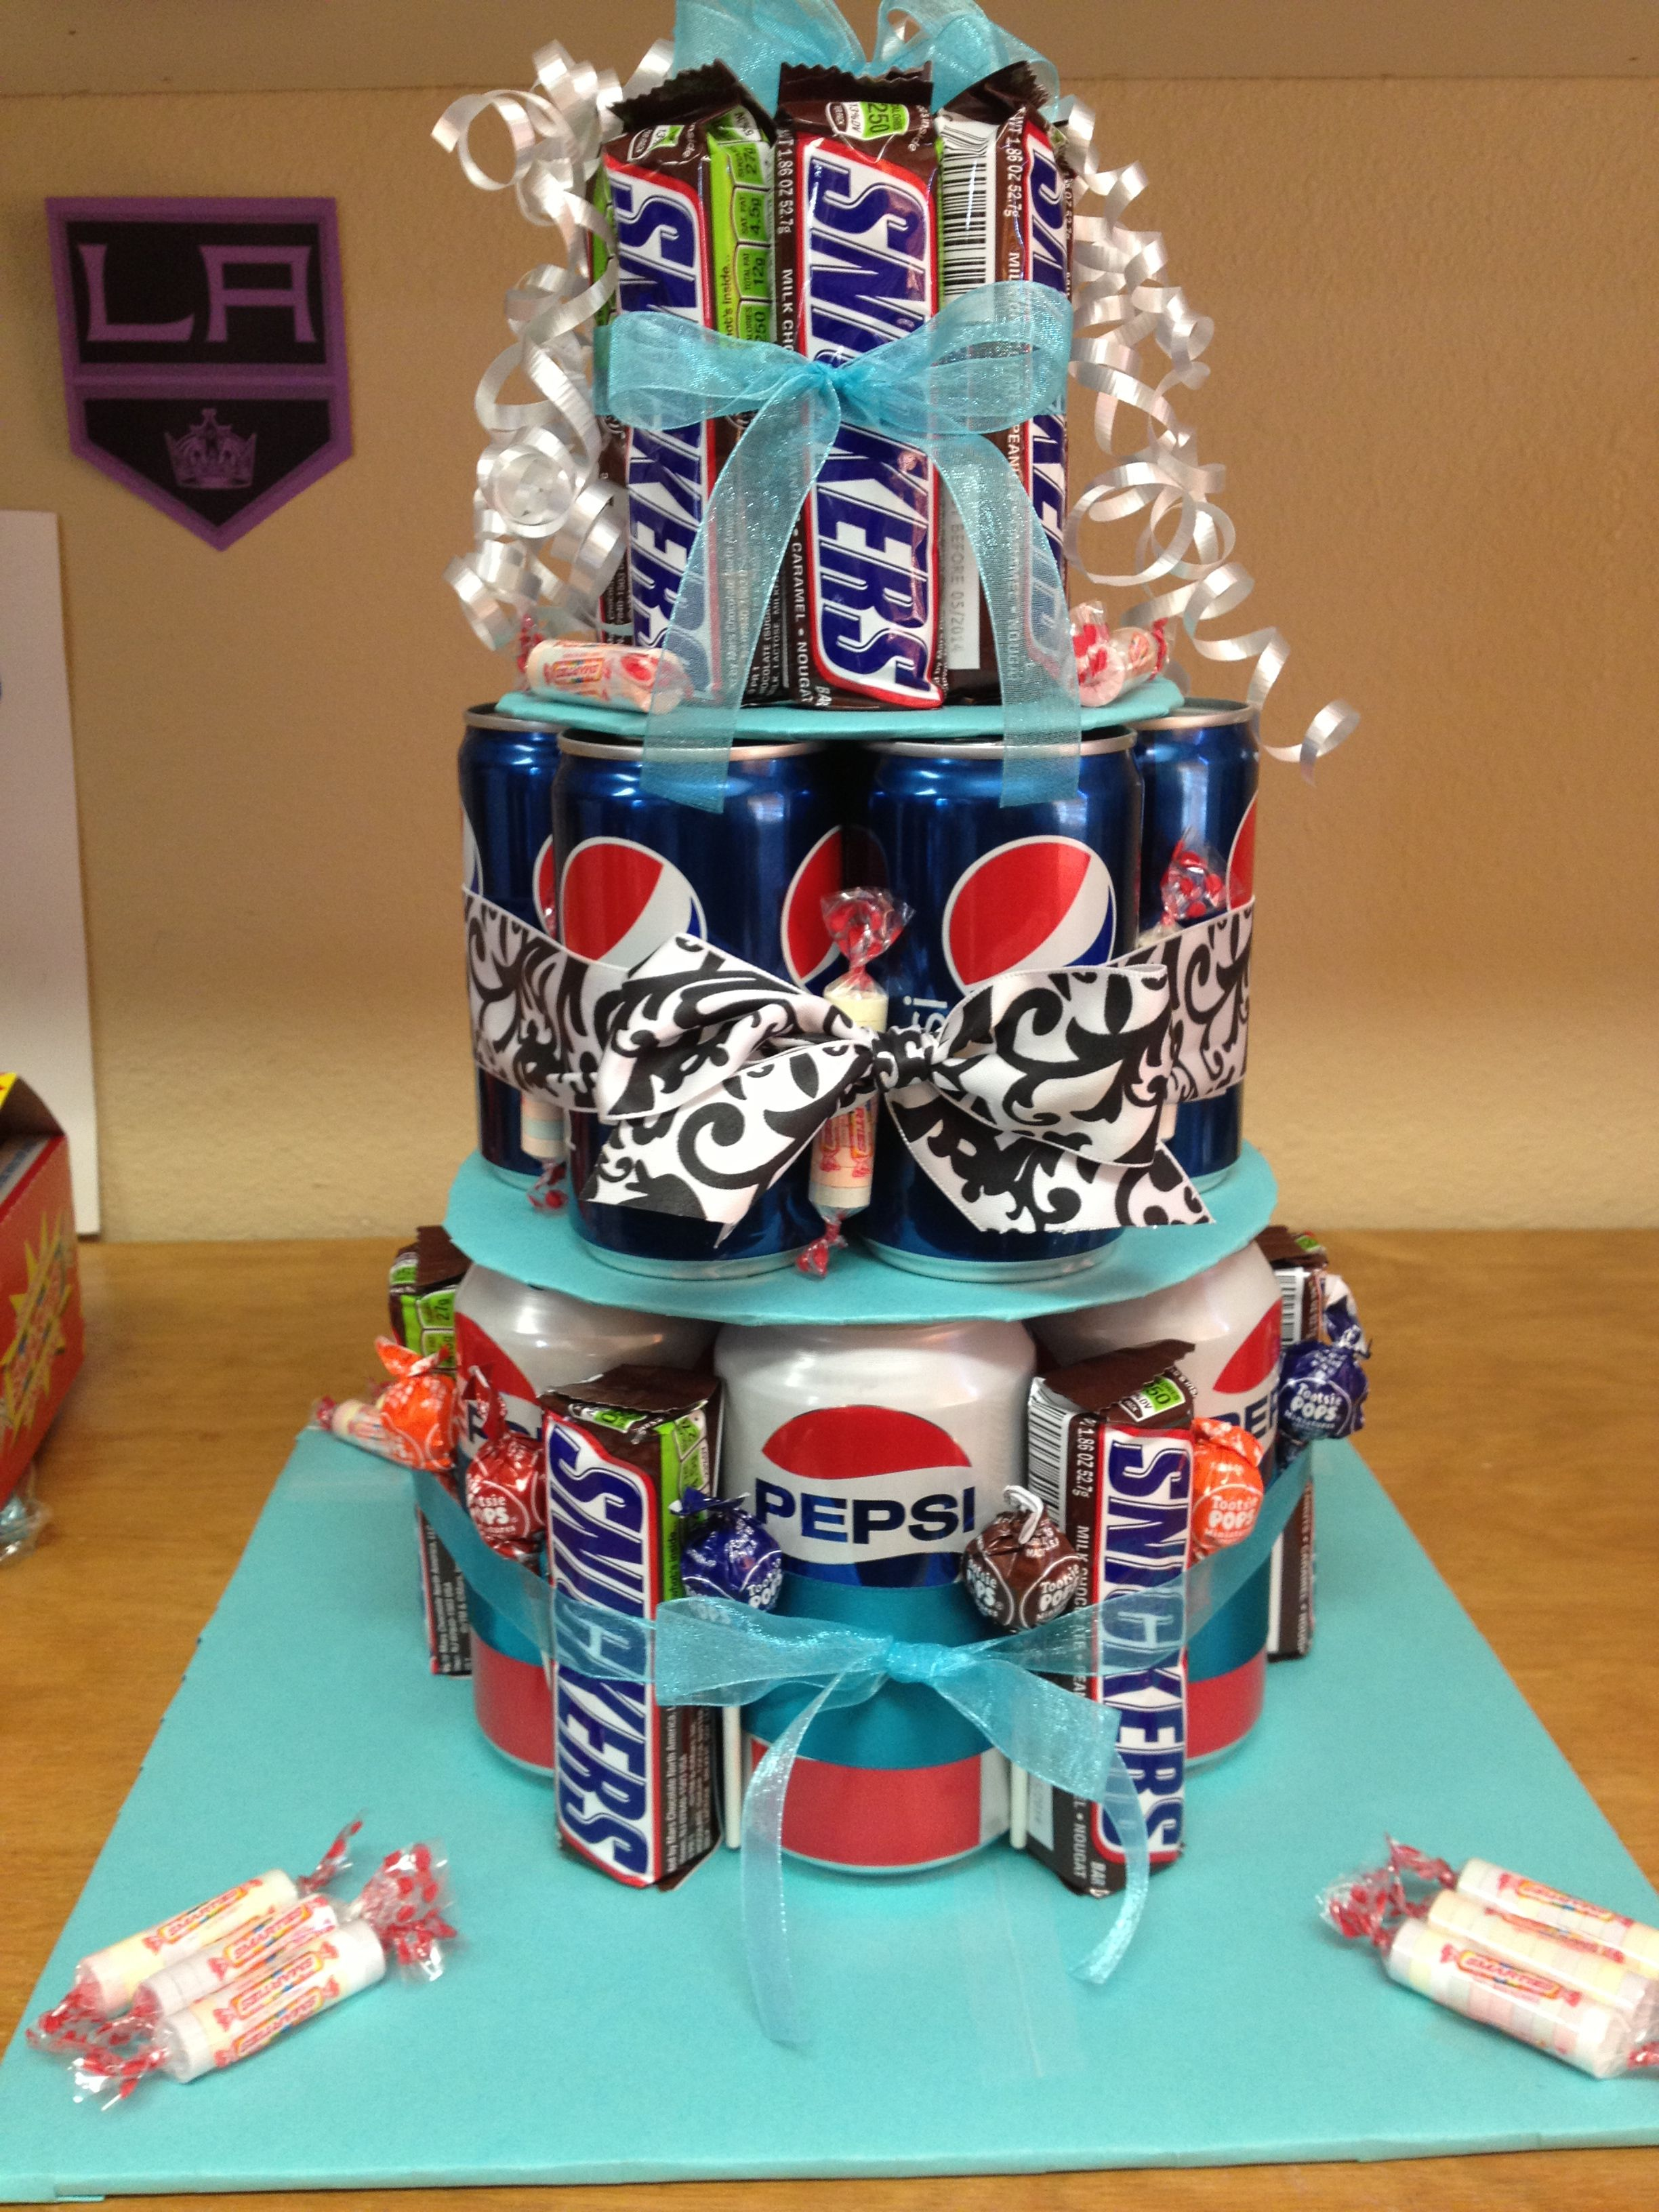 40+ 17th birthday cake for a girl ideas in 2021